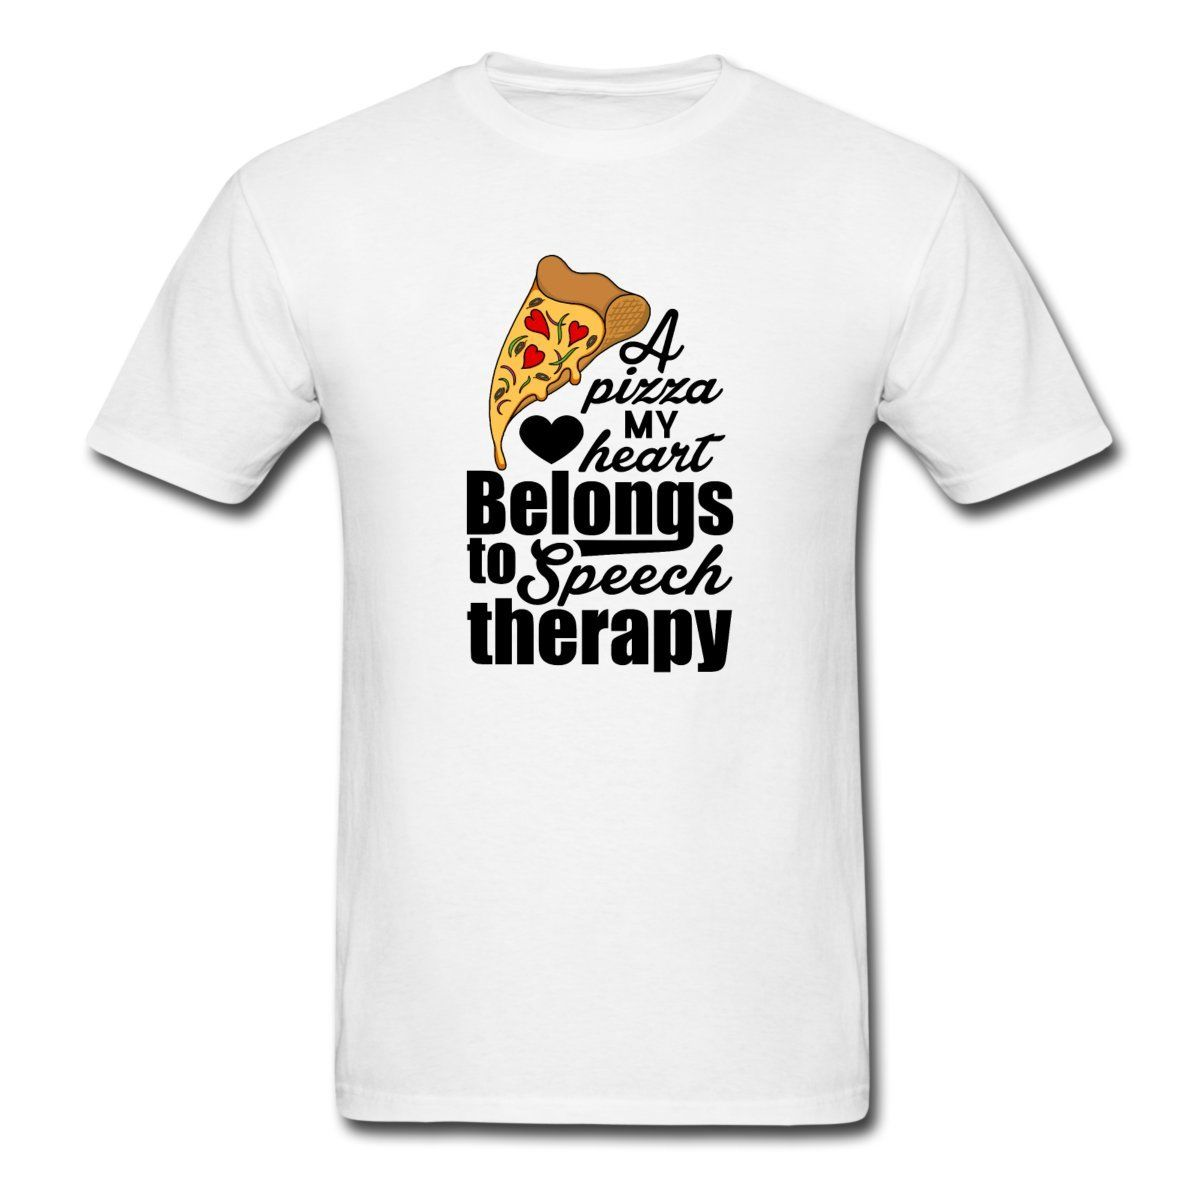 Cool Graphic T Shirts Novelty Short Crew Neck Mens Speech Therapy Pun A Pizza My Heart Tees image